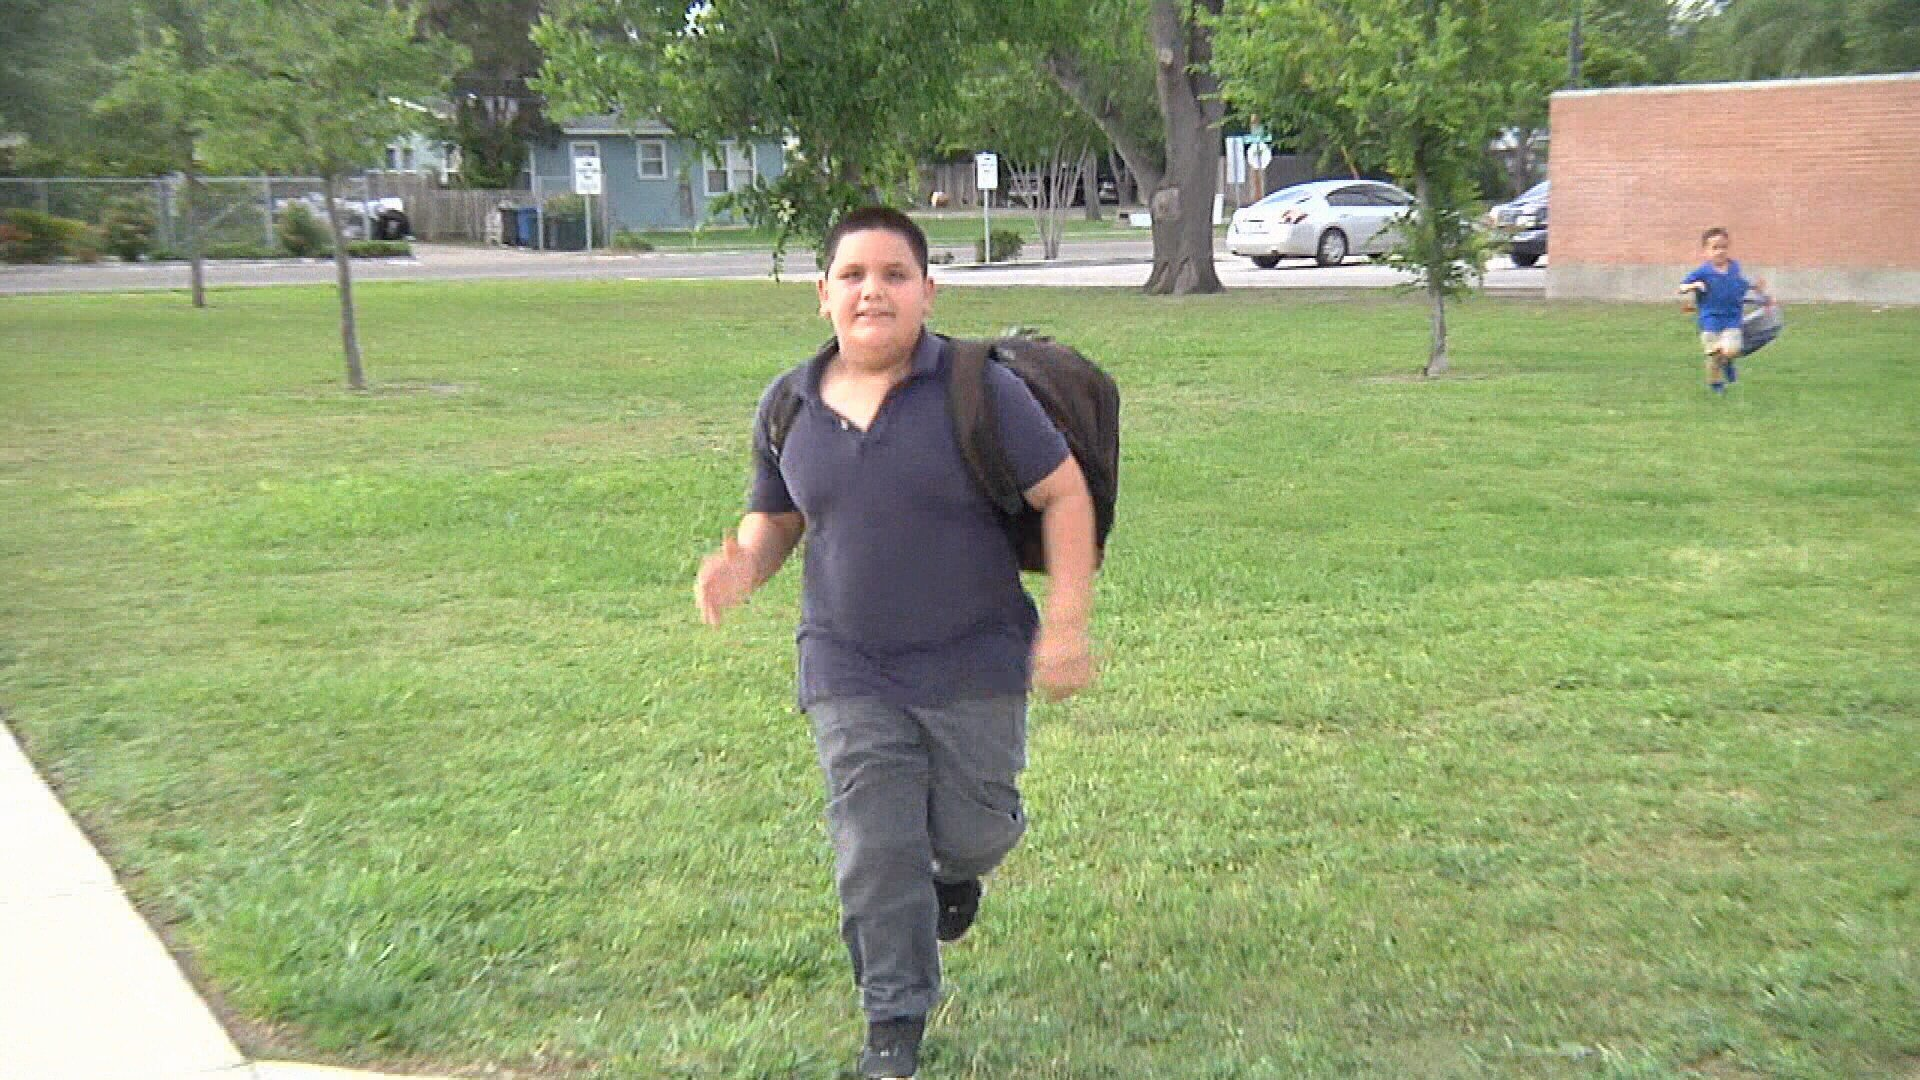 The program costs up to $400,000 in extra electric and custodial bills each year, and both the school district and the city say it is difficult for them to pick up the bill.